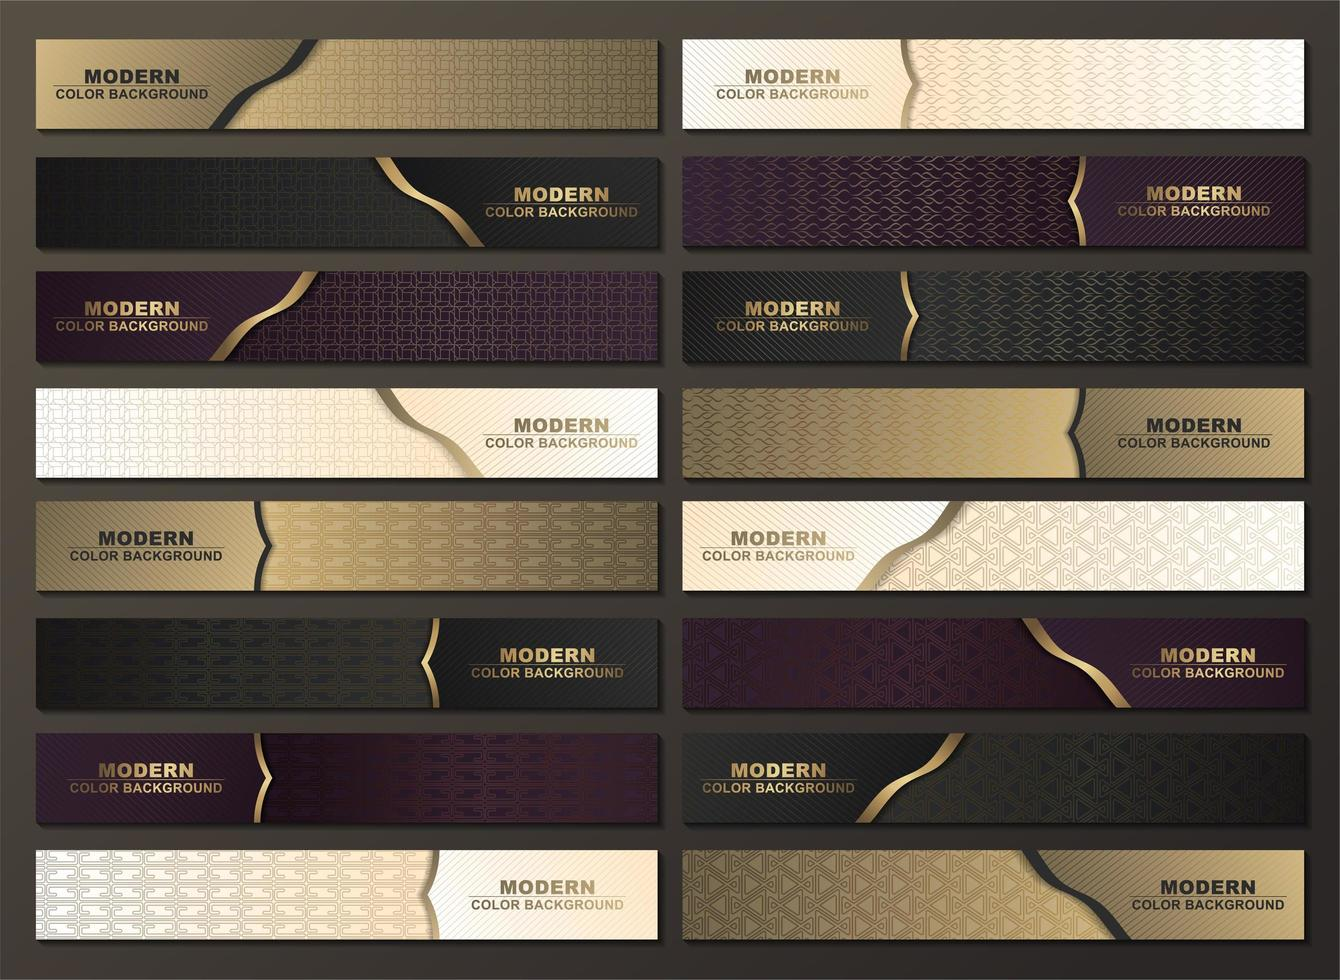 Luxury horizontal patterned banner set with gold accents vector